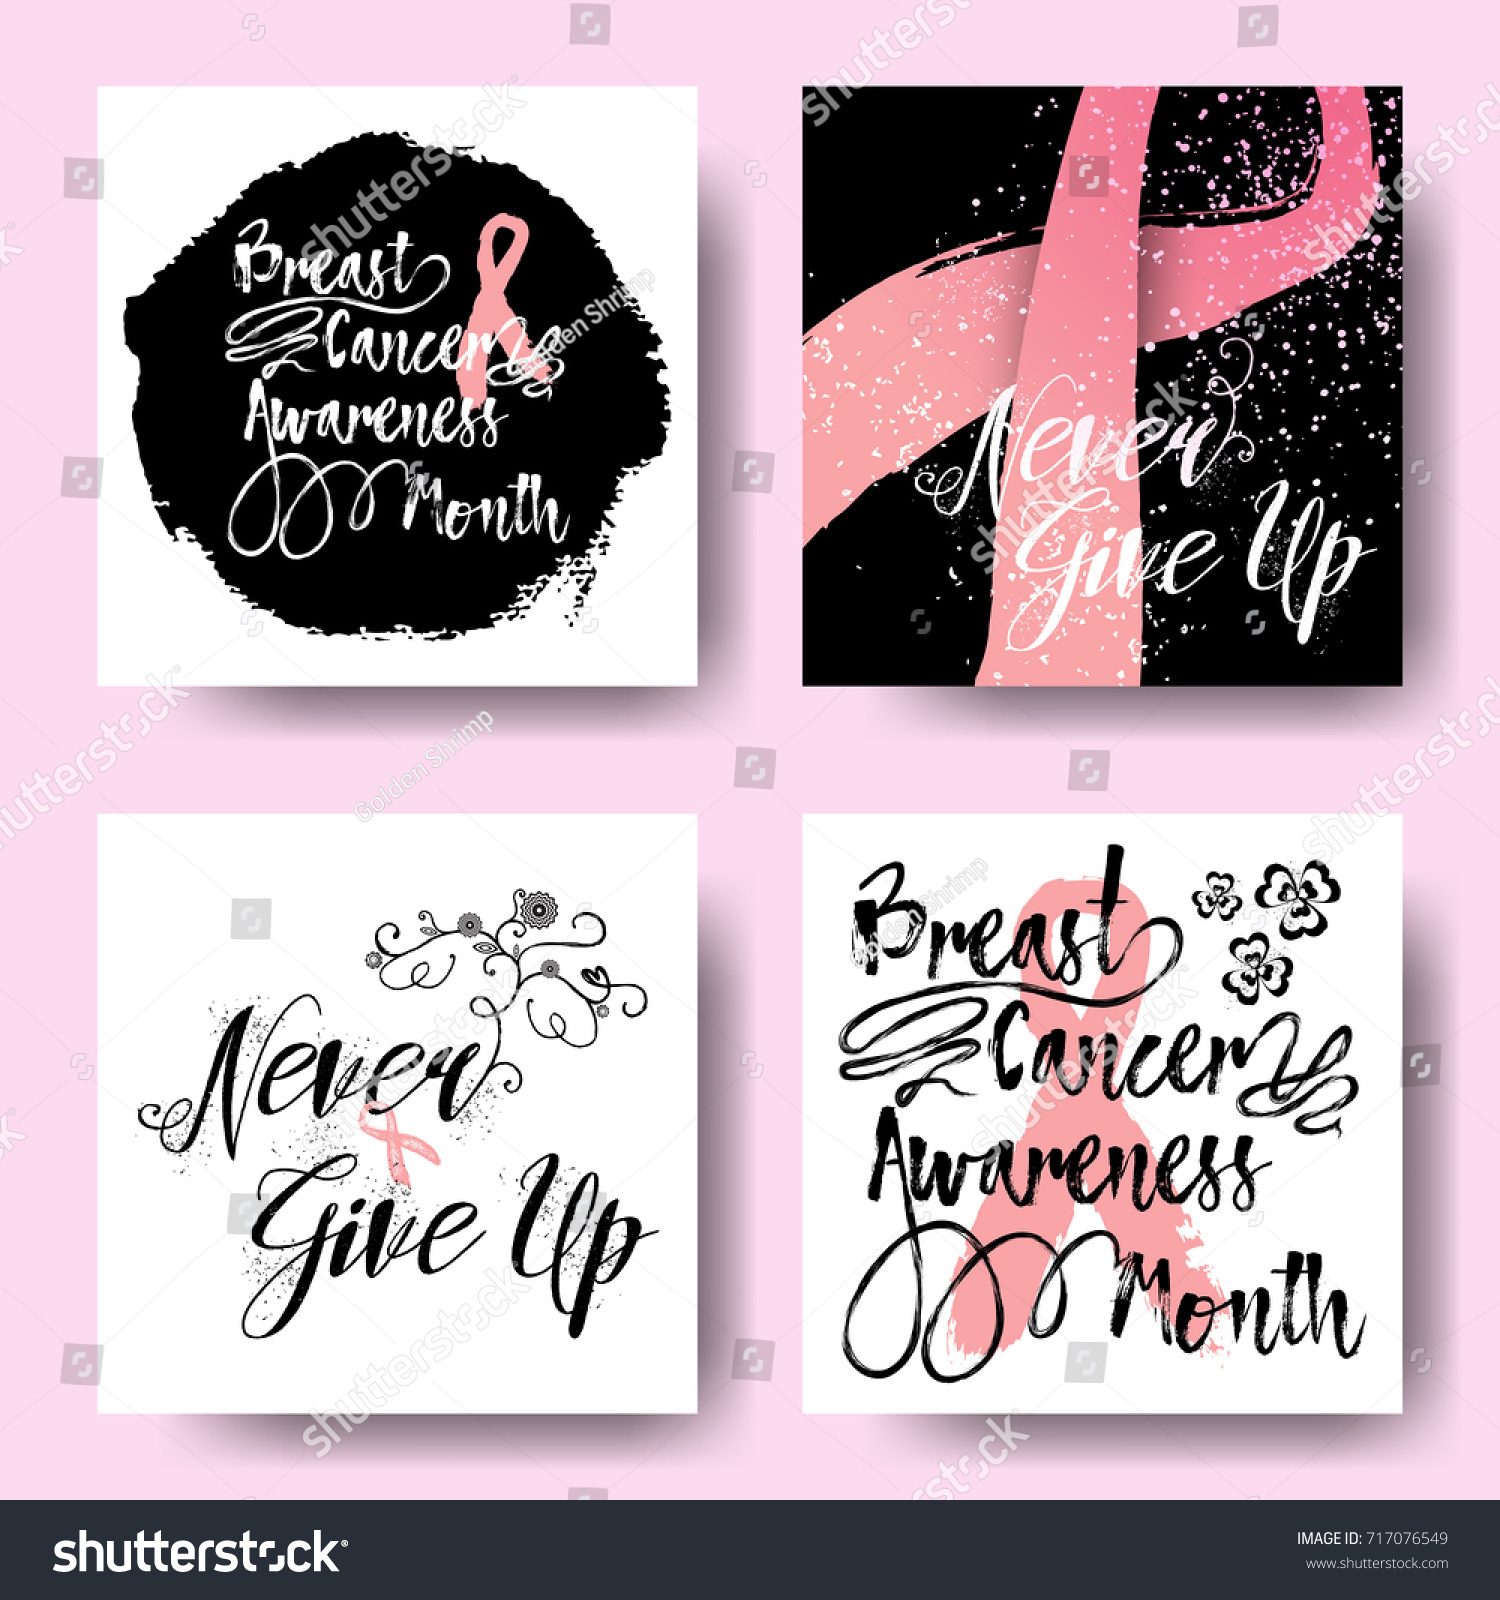 Set pink ribbons symbols cards october stock vector 717076549 set of pink ribbons symbols and cards for october breast cancer awareness month collection of buycottarizona Images